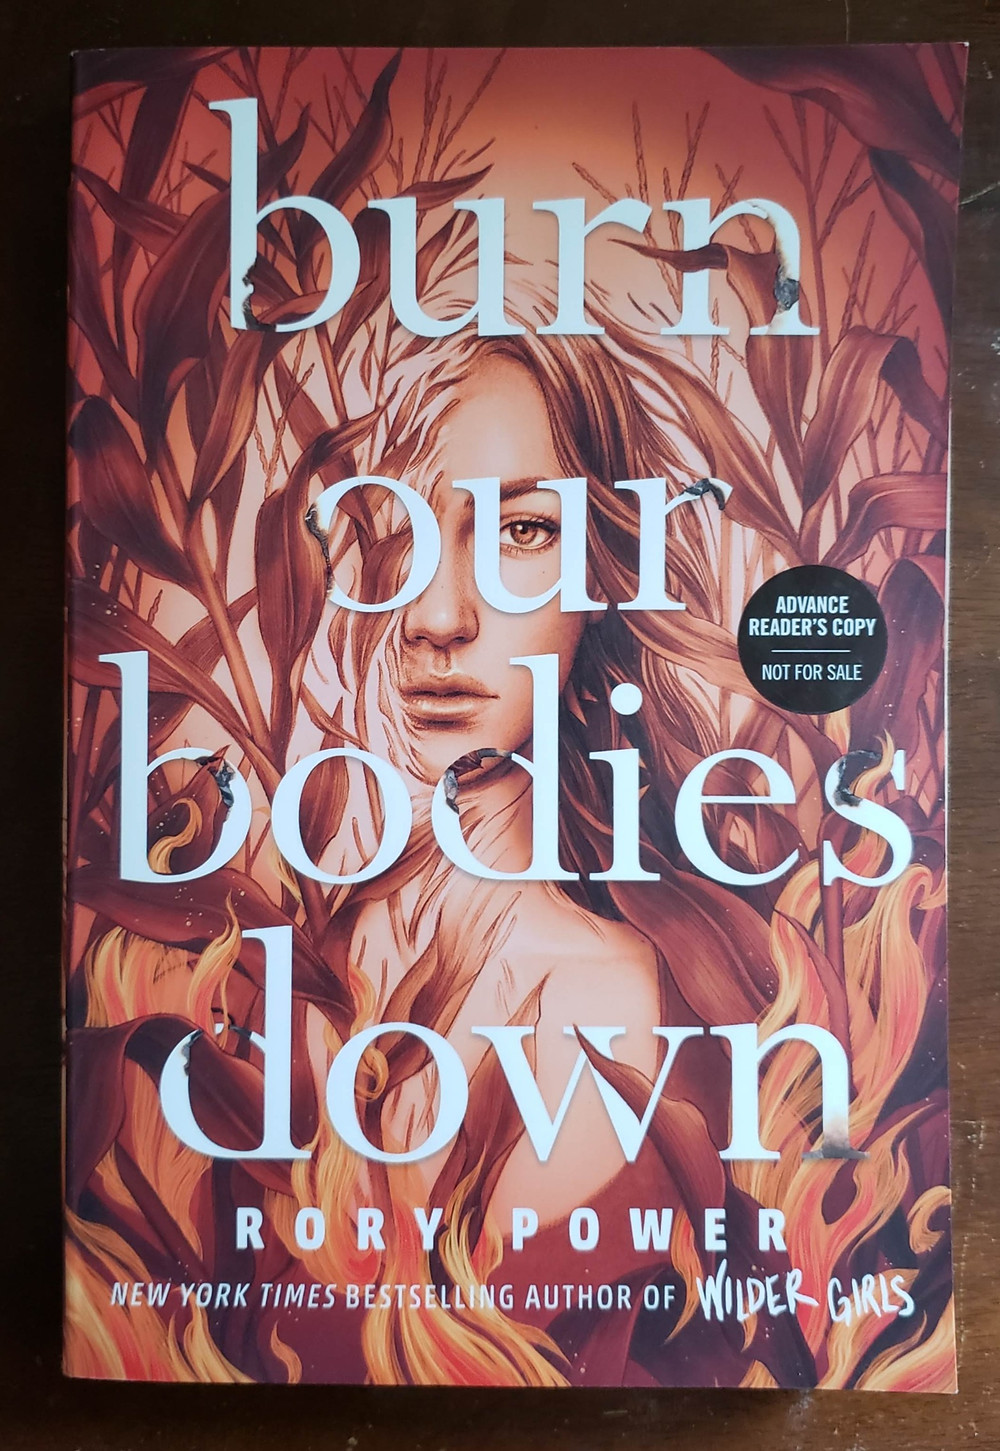 The front facing cover of the book Burn Our Bodies Down by Rory Powers.